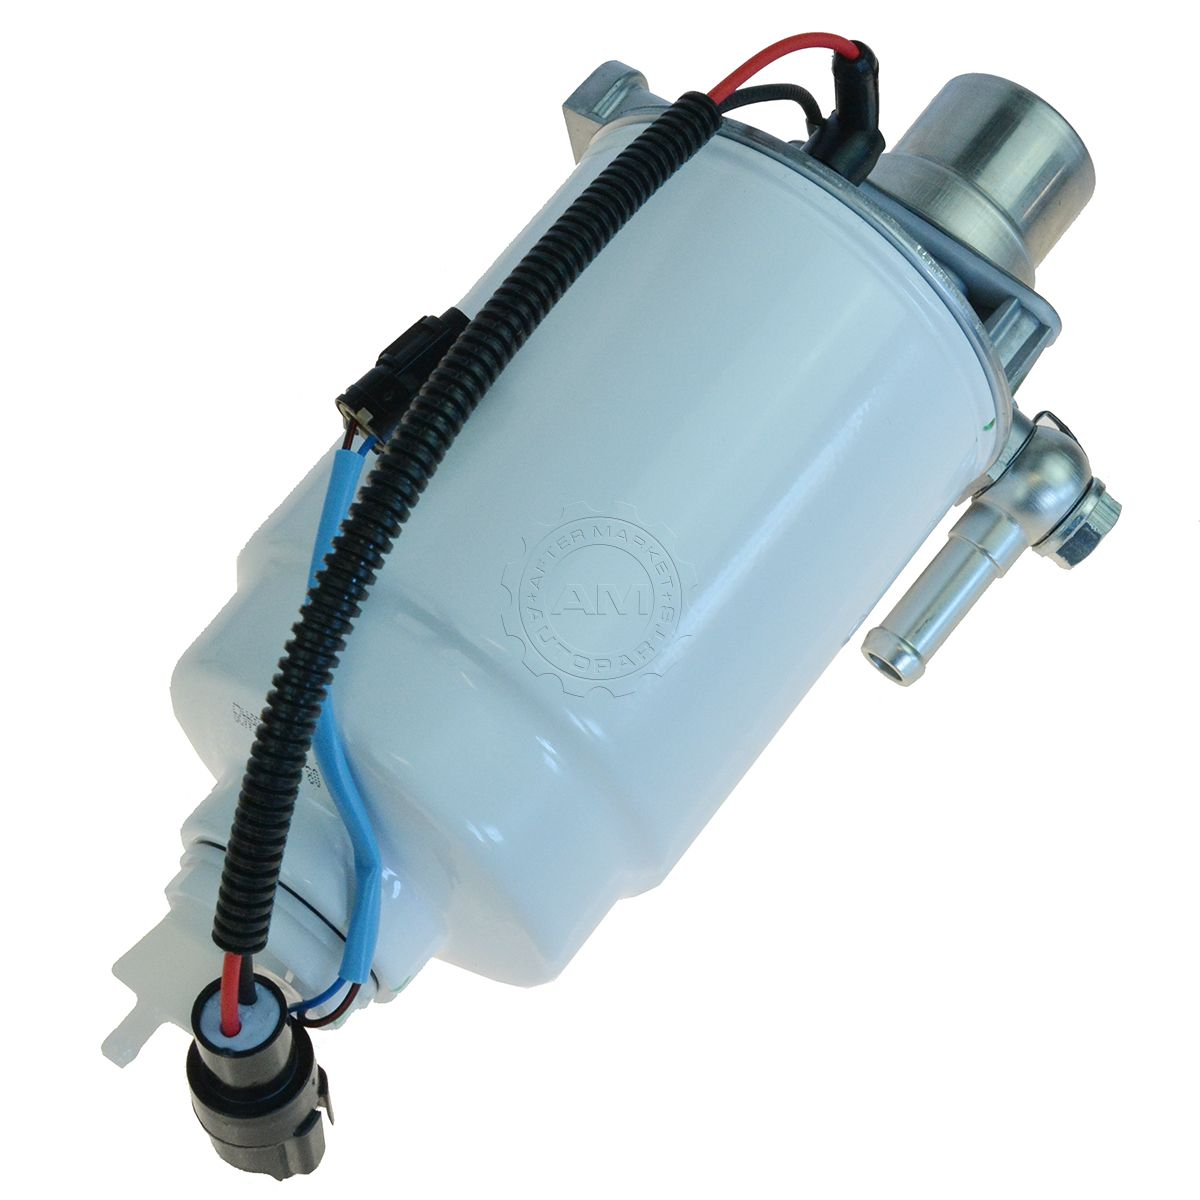 hight resolution of oem fuel filter housing assembly 6 6l duramax turbo diesel for 03 09 chevy gmc